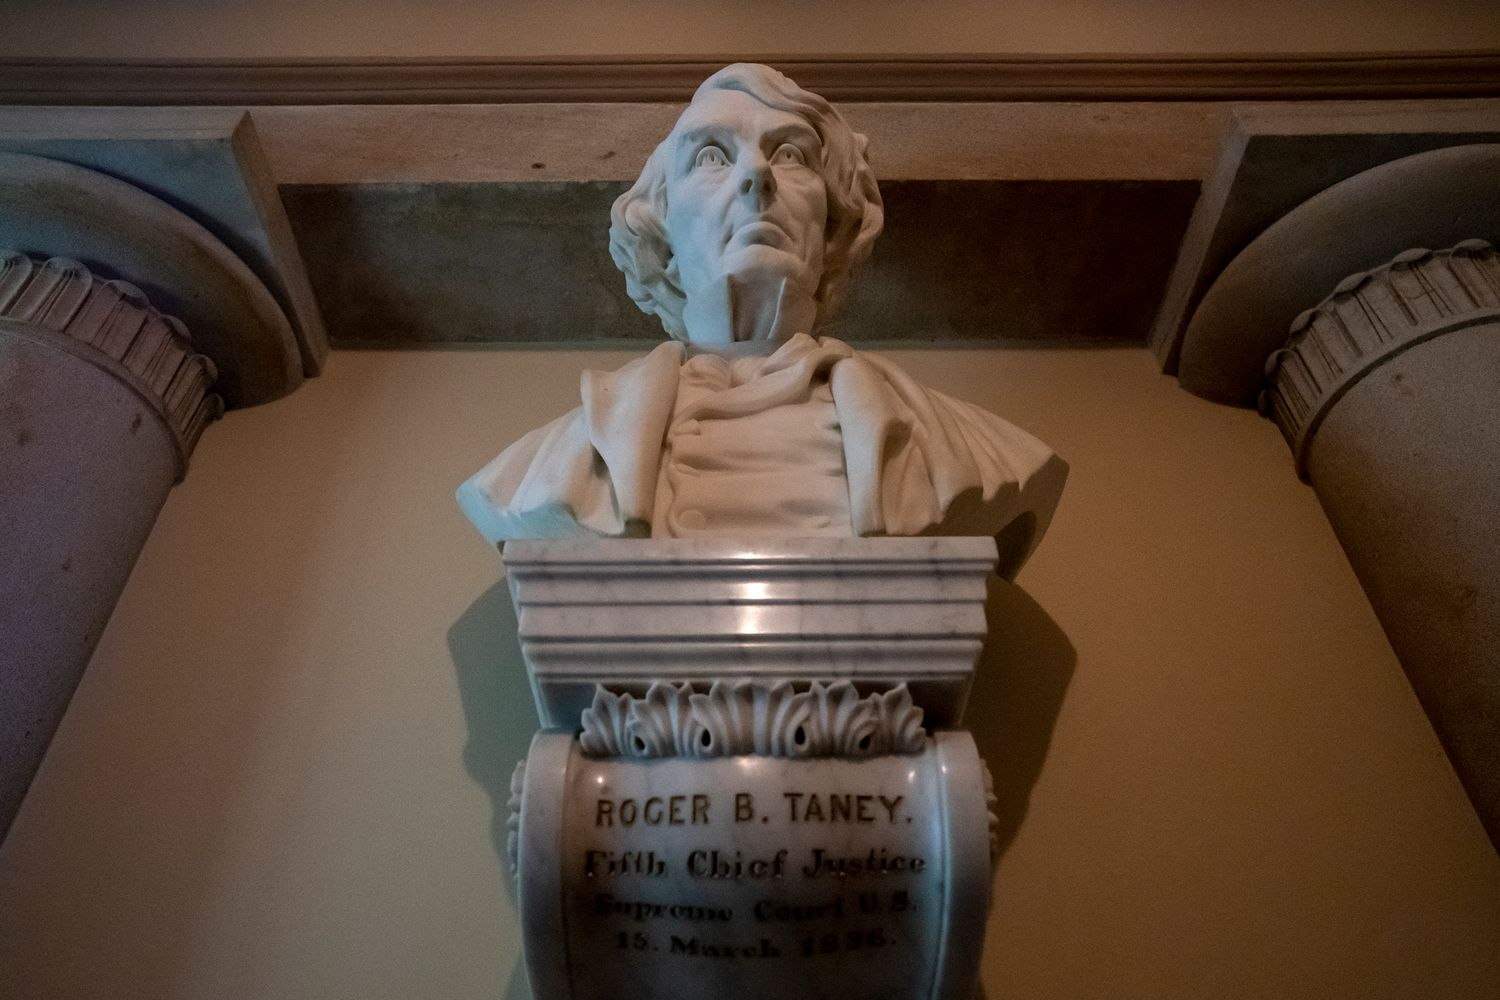 House to vote in July to remove bust of Roger Taney from Capitol